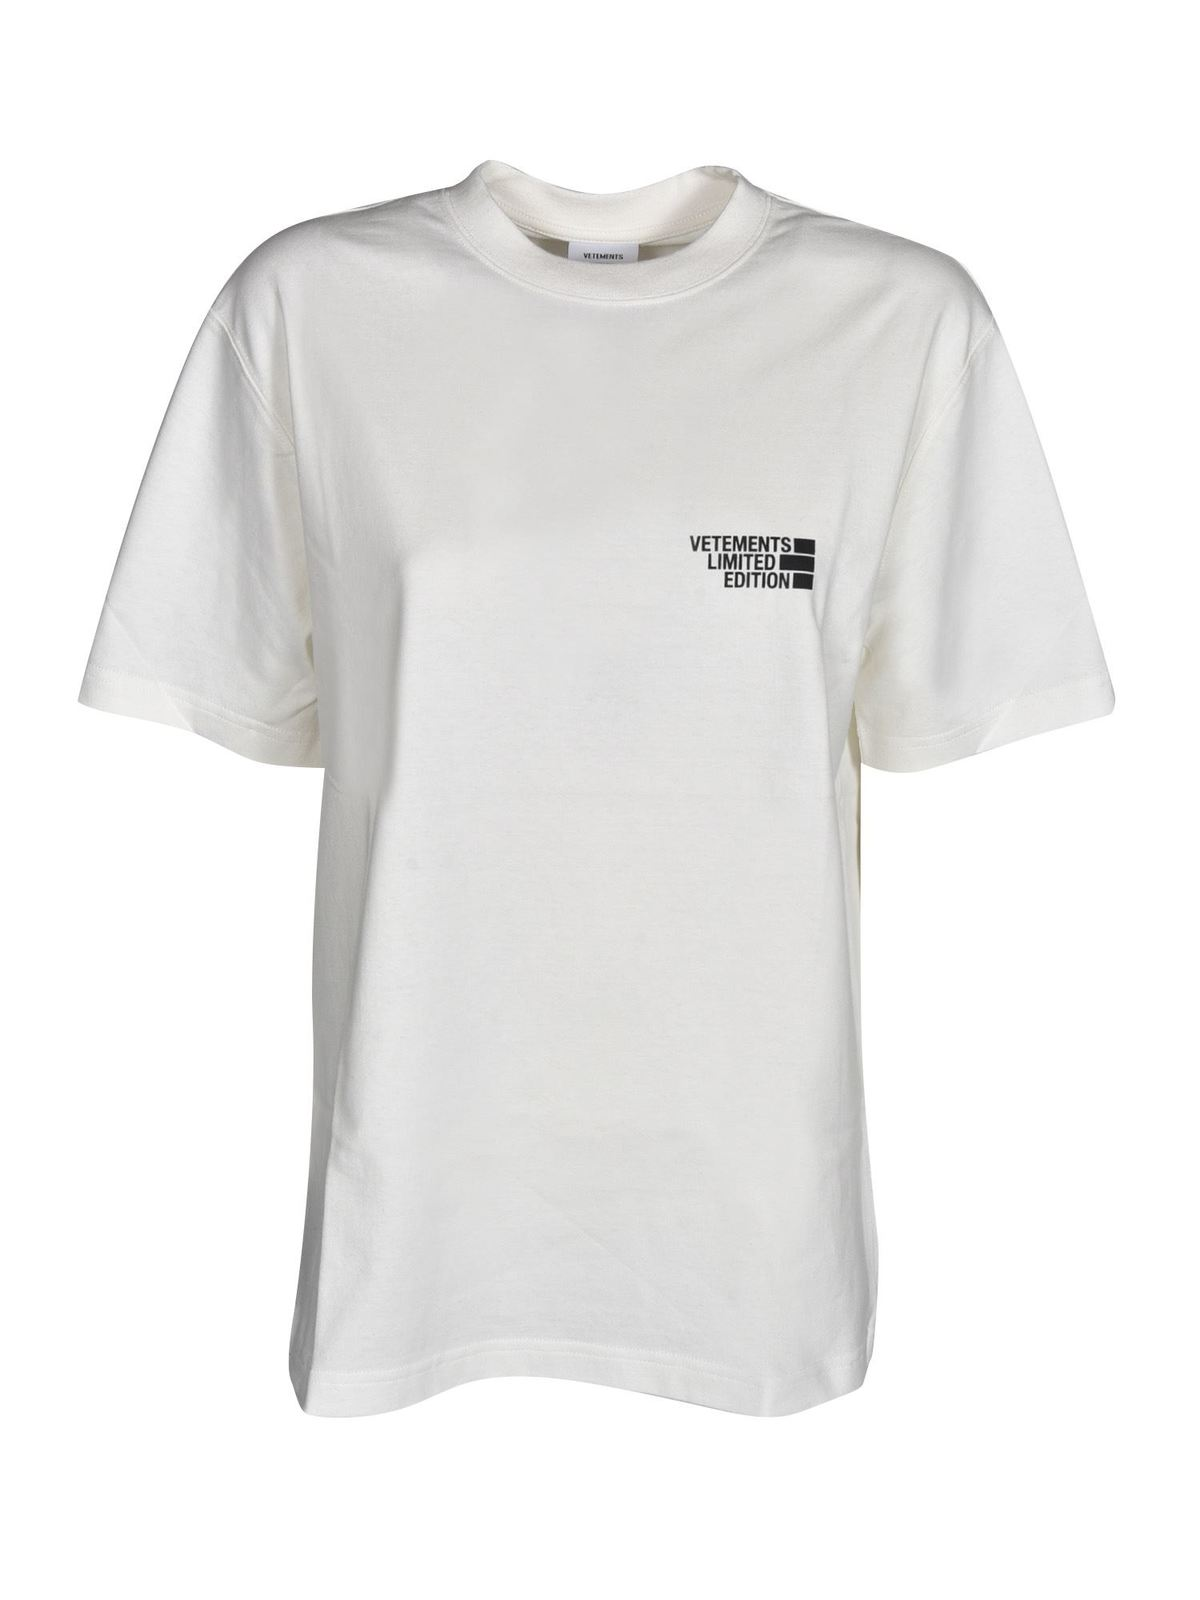 Vetements Cottons LOGO PRINT T-SHIRT IN WHITE